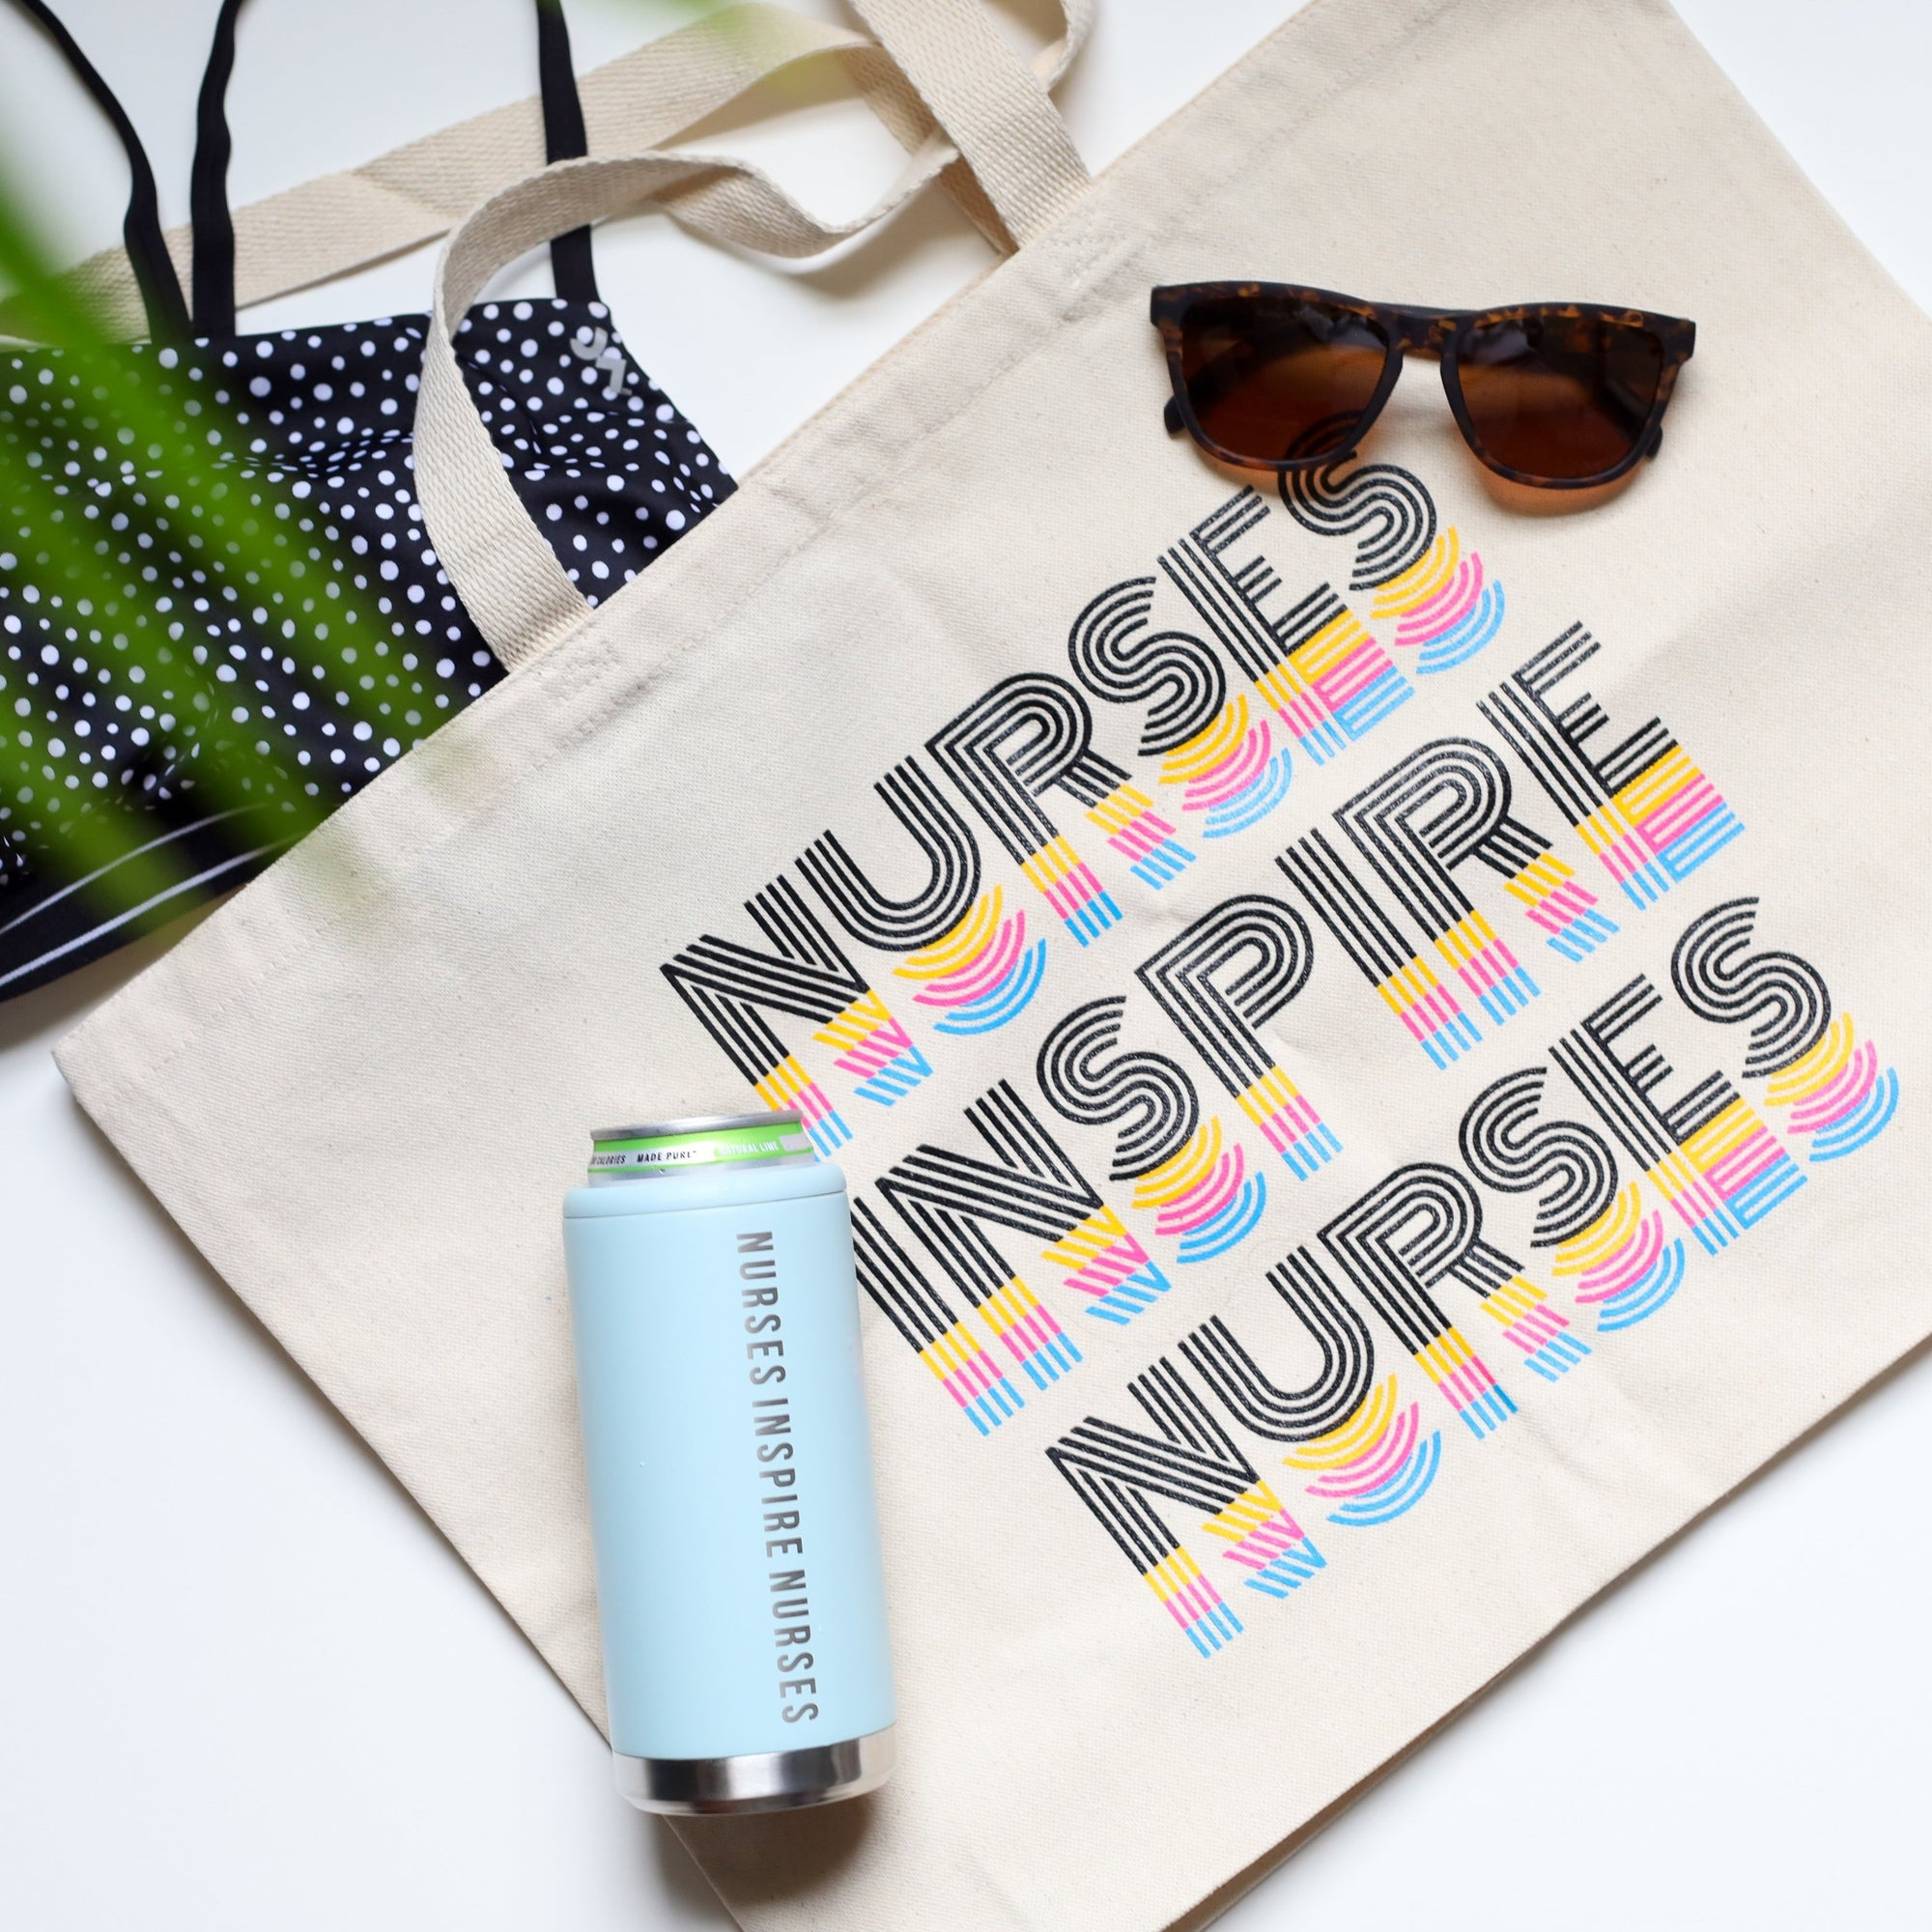 Summer Tote & Skinny Can Tumbler Bundle